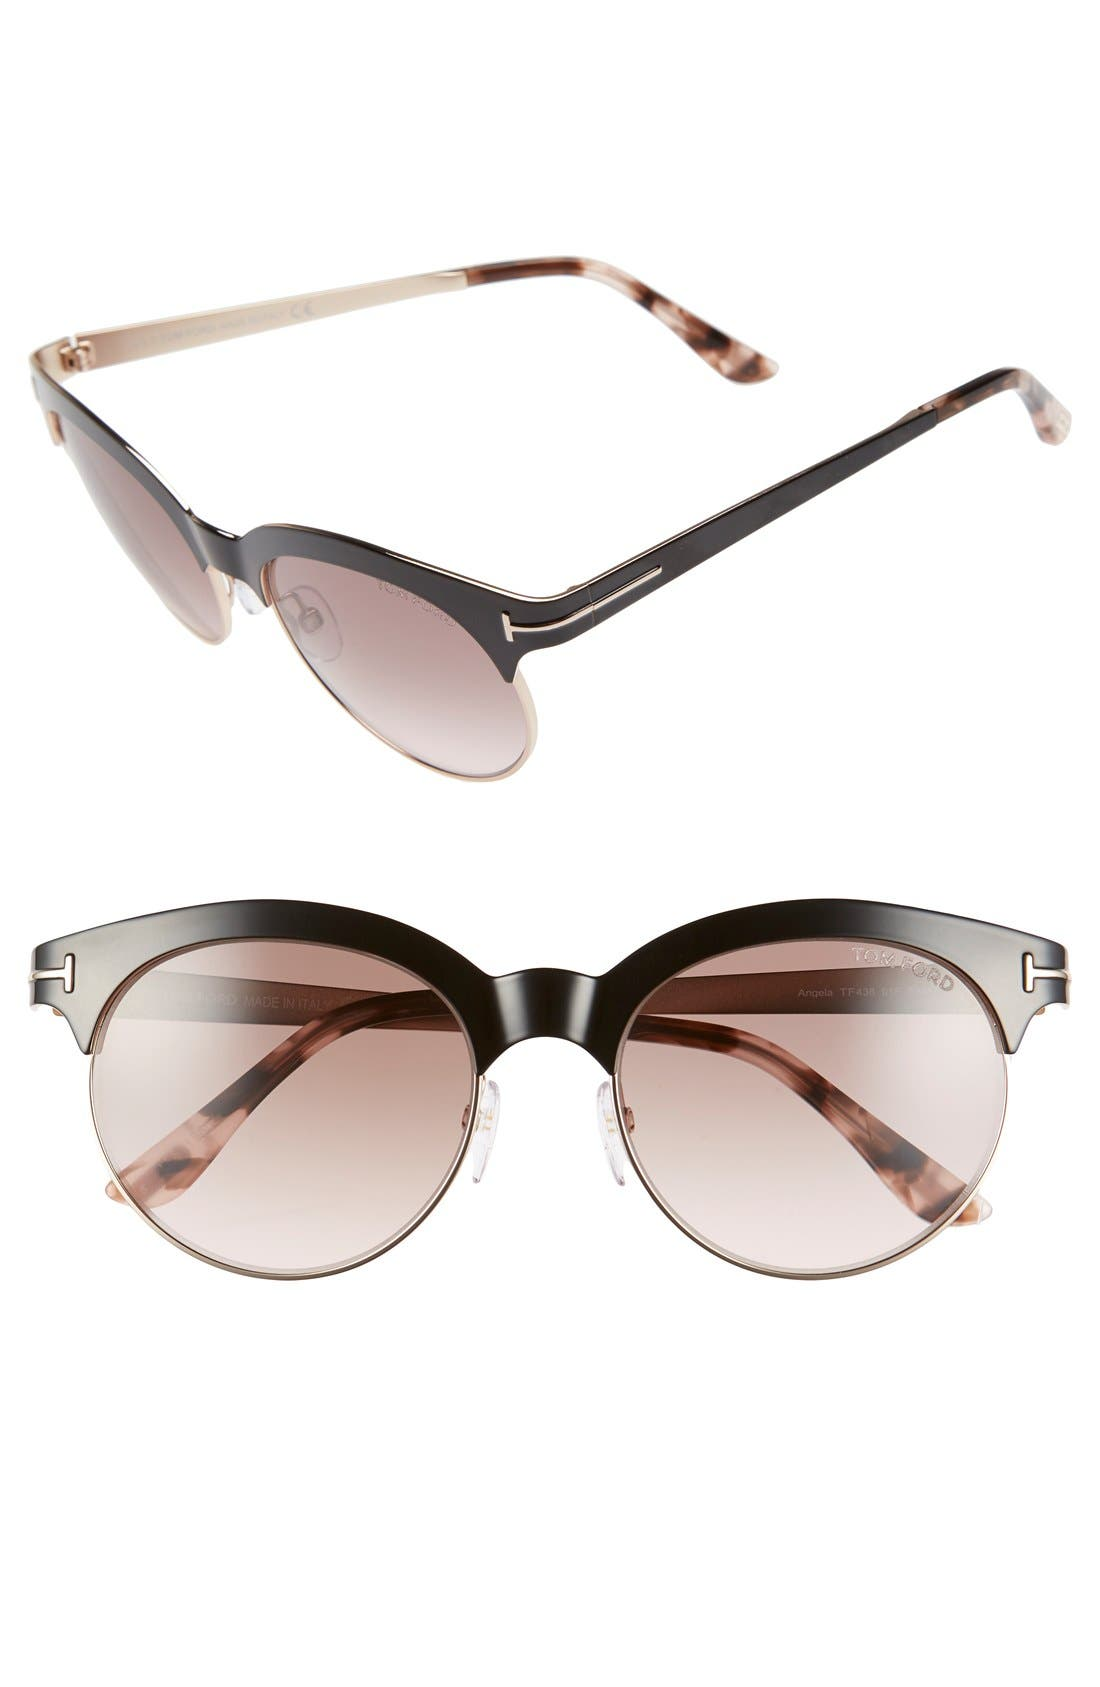 Main Image - Tom Ford 'Angela' 53mm Retro Sunglasses